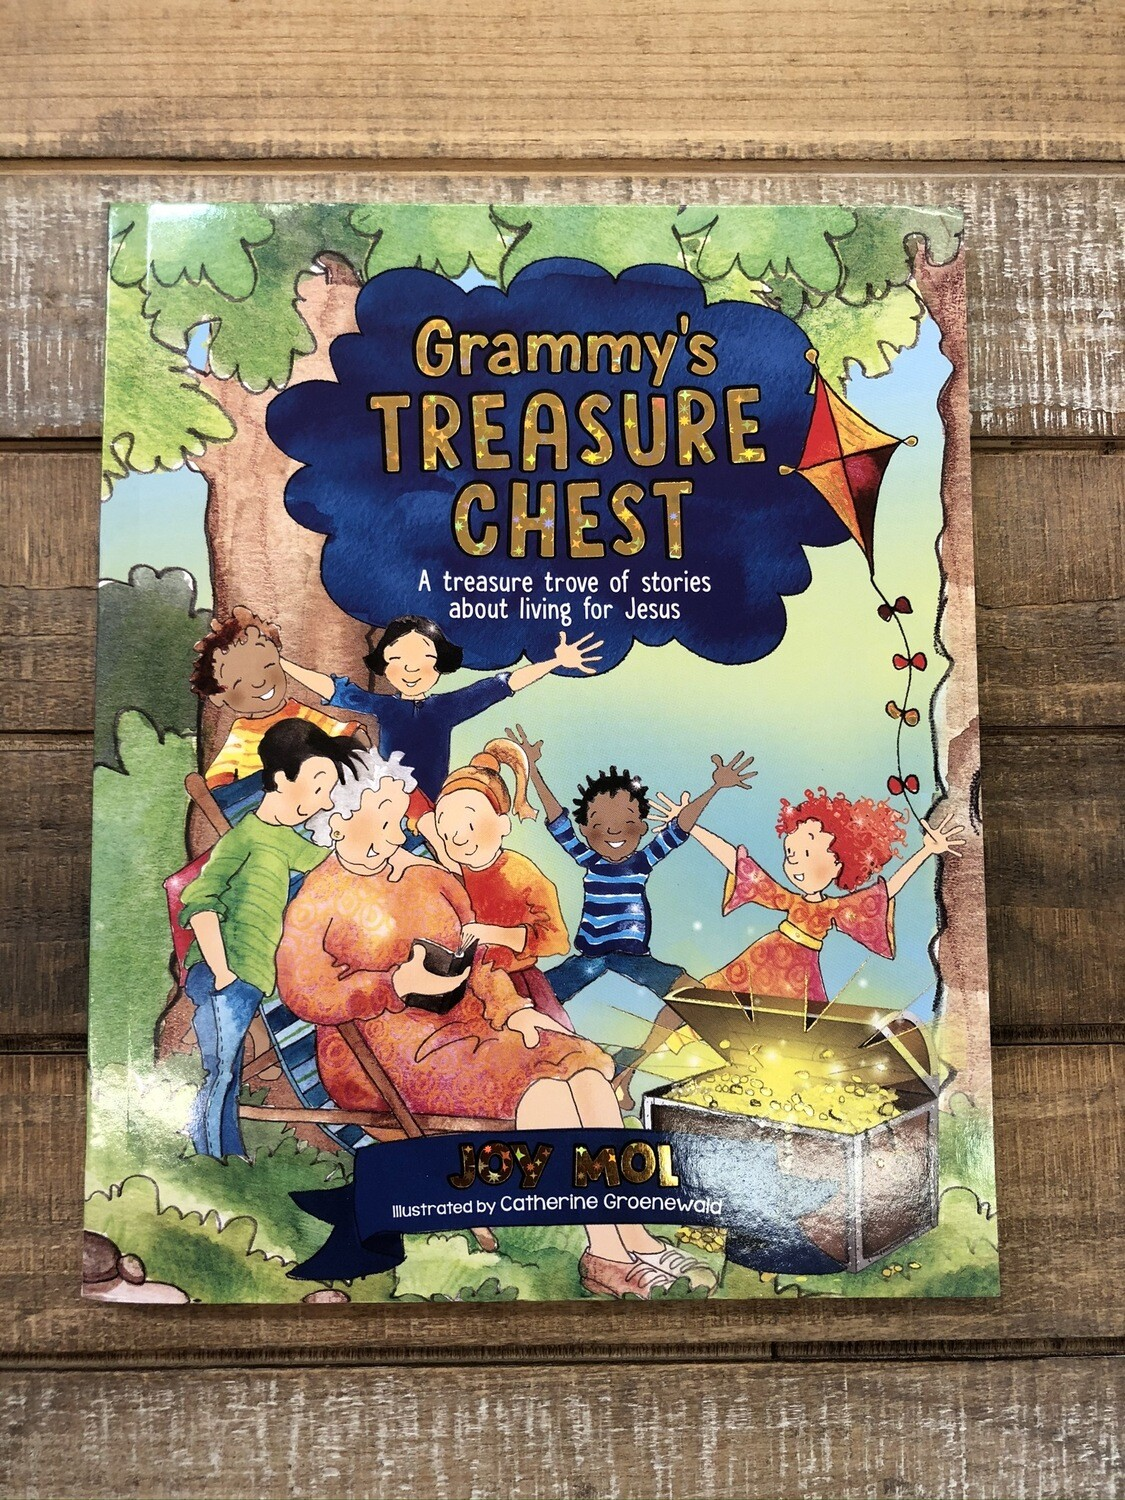 Grammy's Treasure Chest